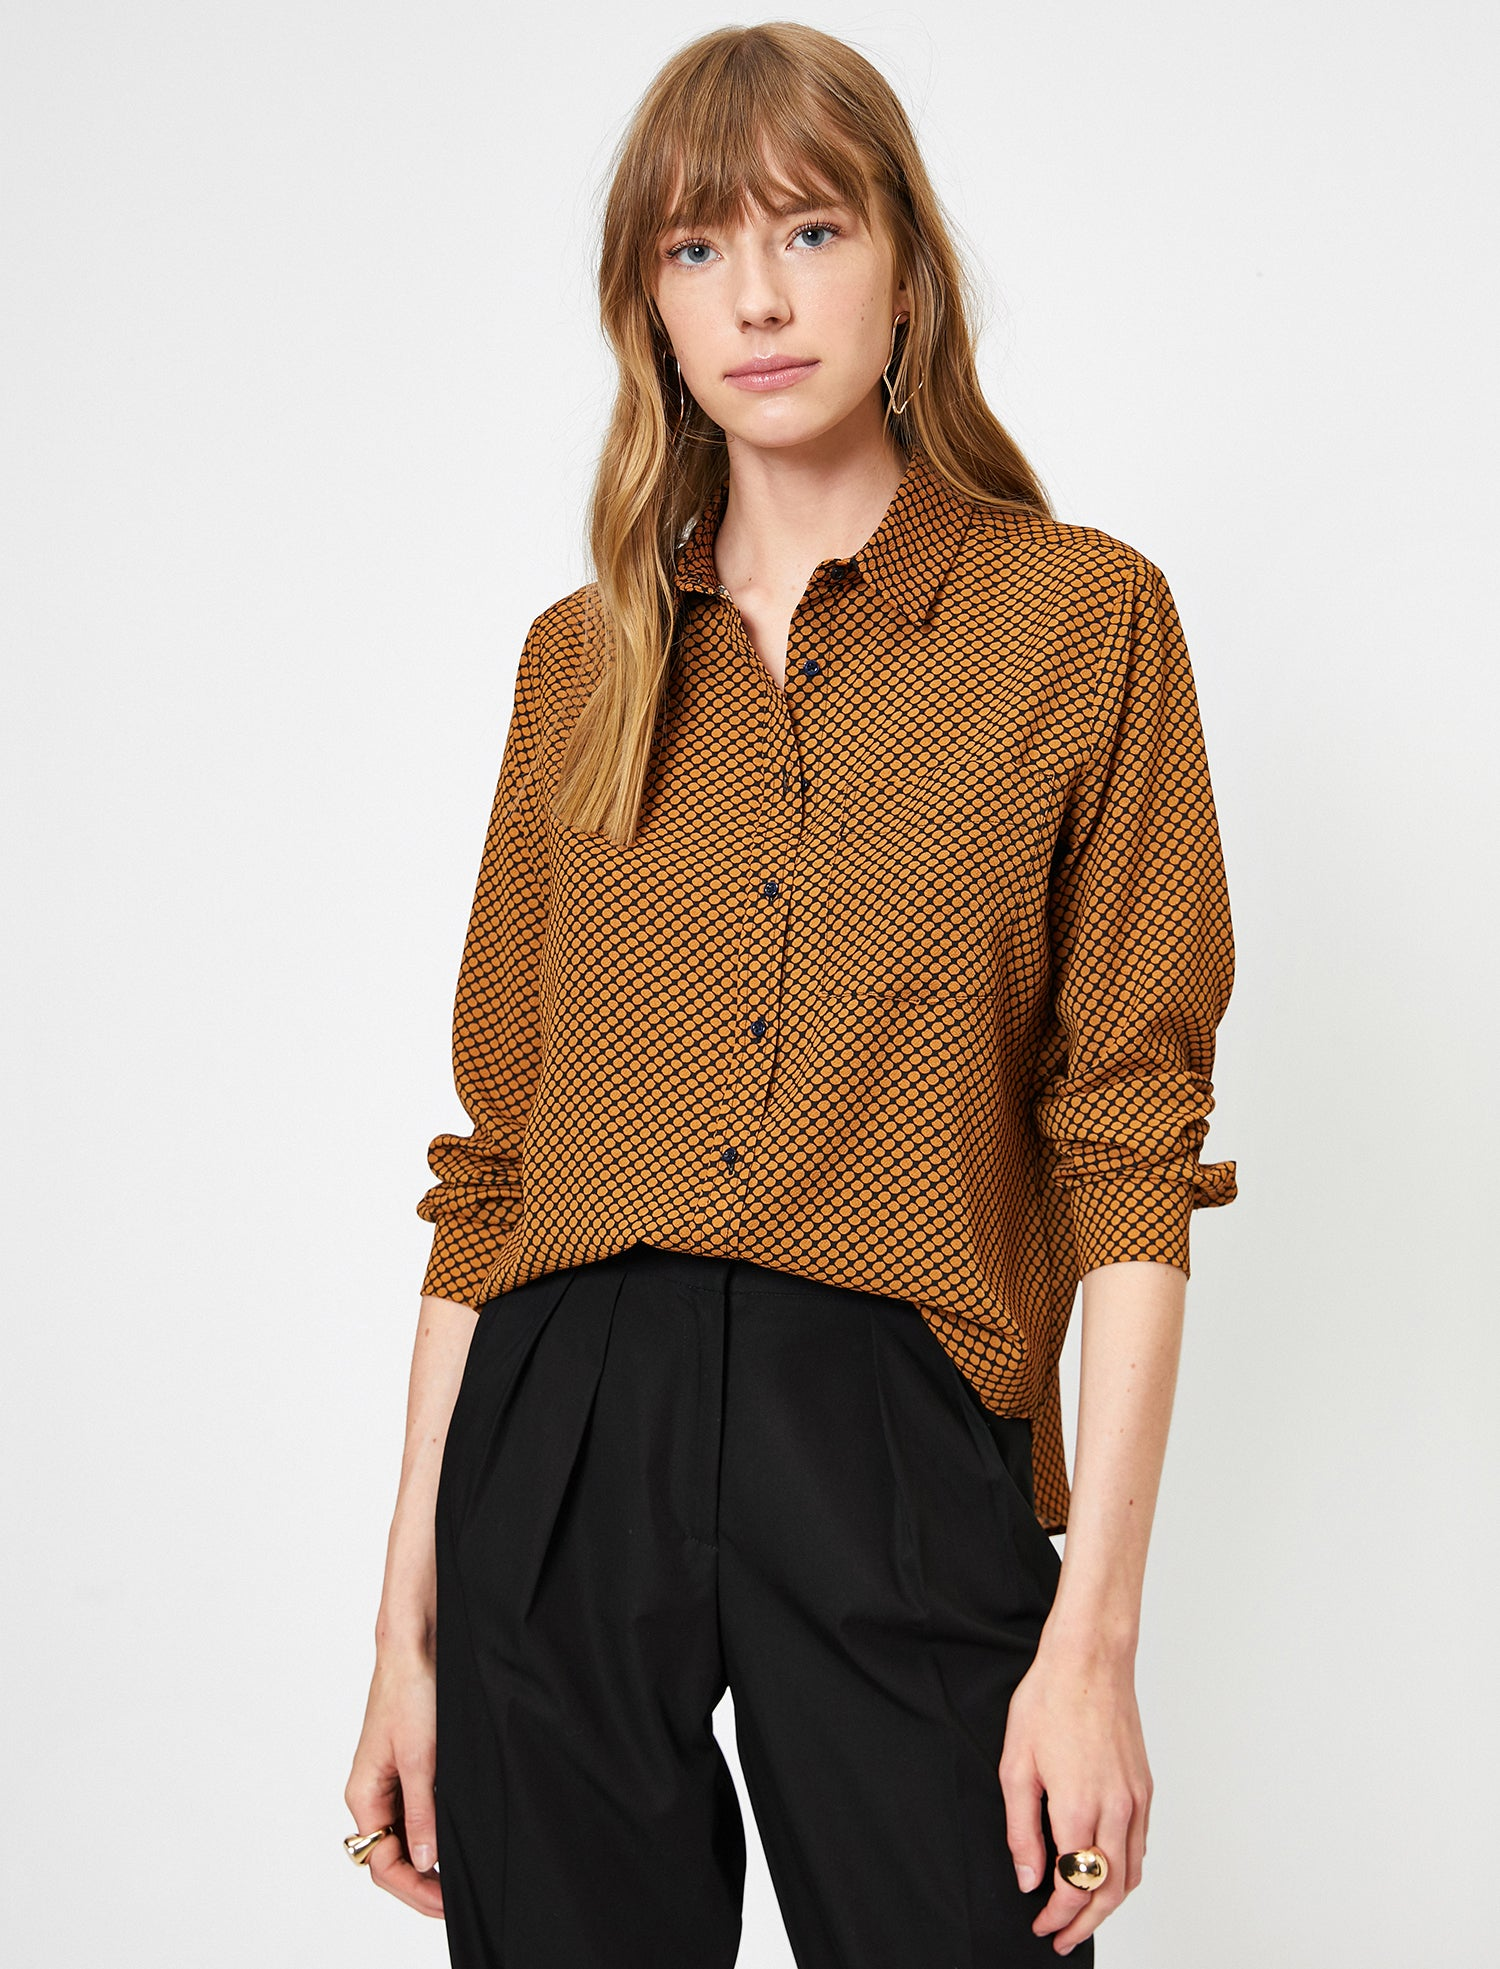 WOMEN BLOUSES MUSTARD PATTERNED